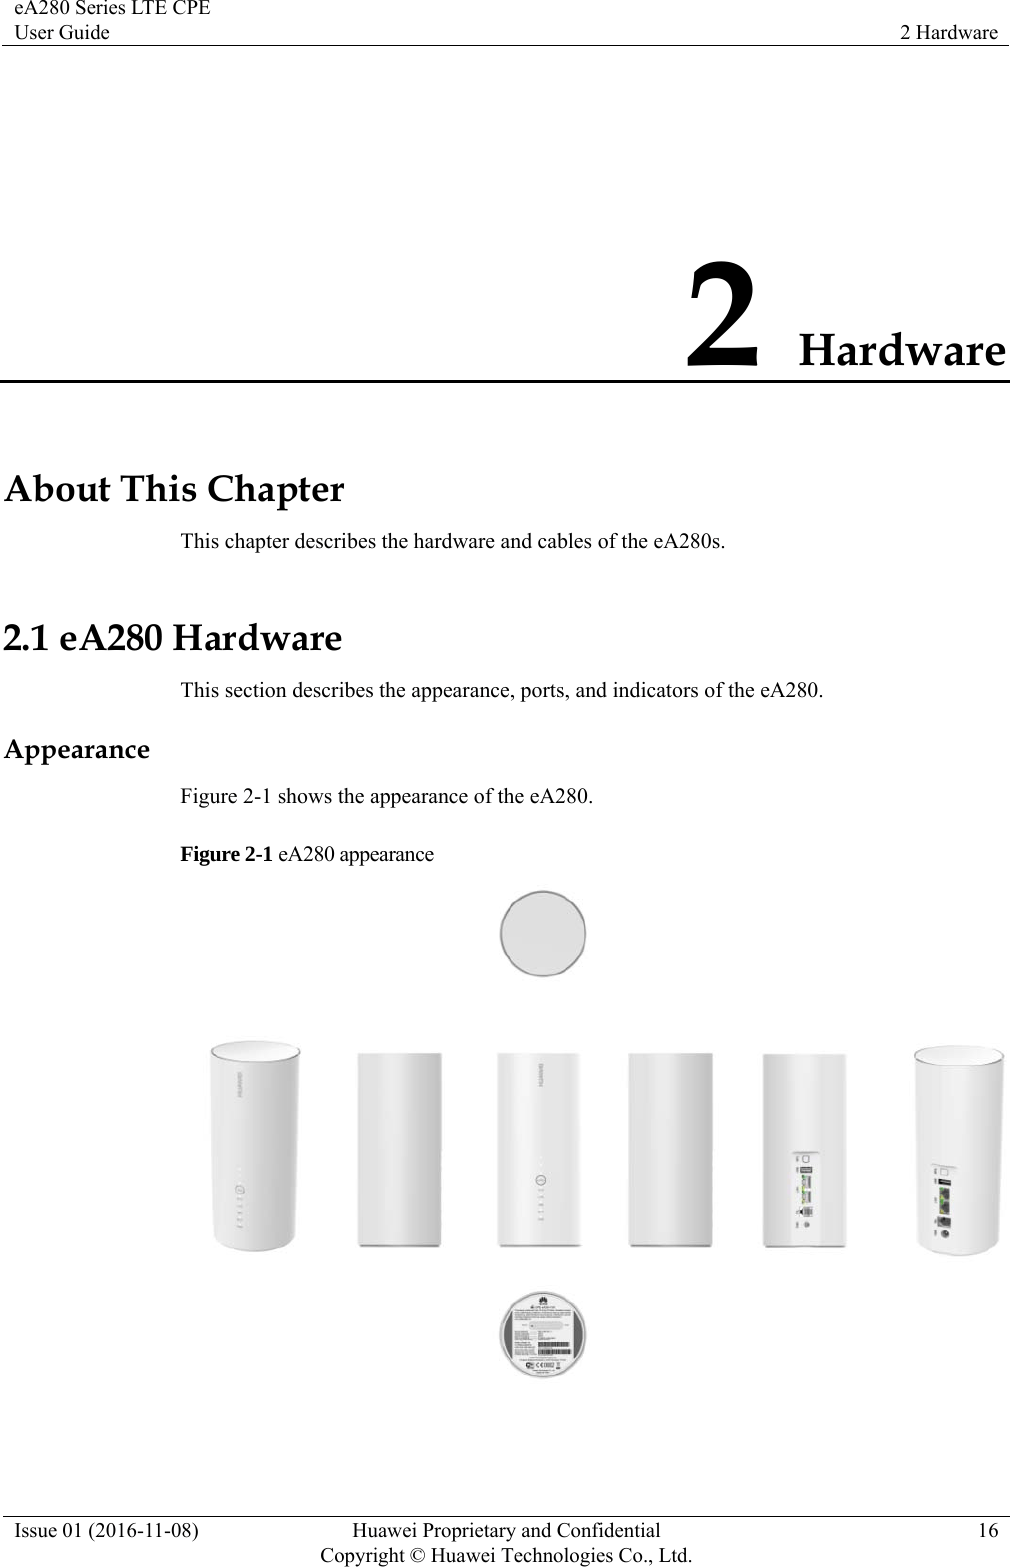 Huawei Technologies EA280-135 LTE CPE User Manual eA280